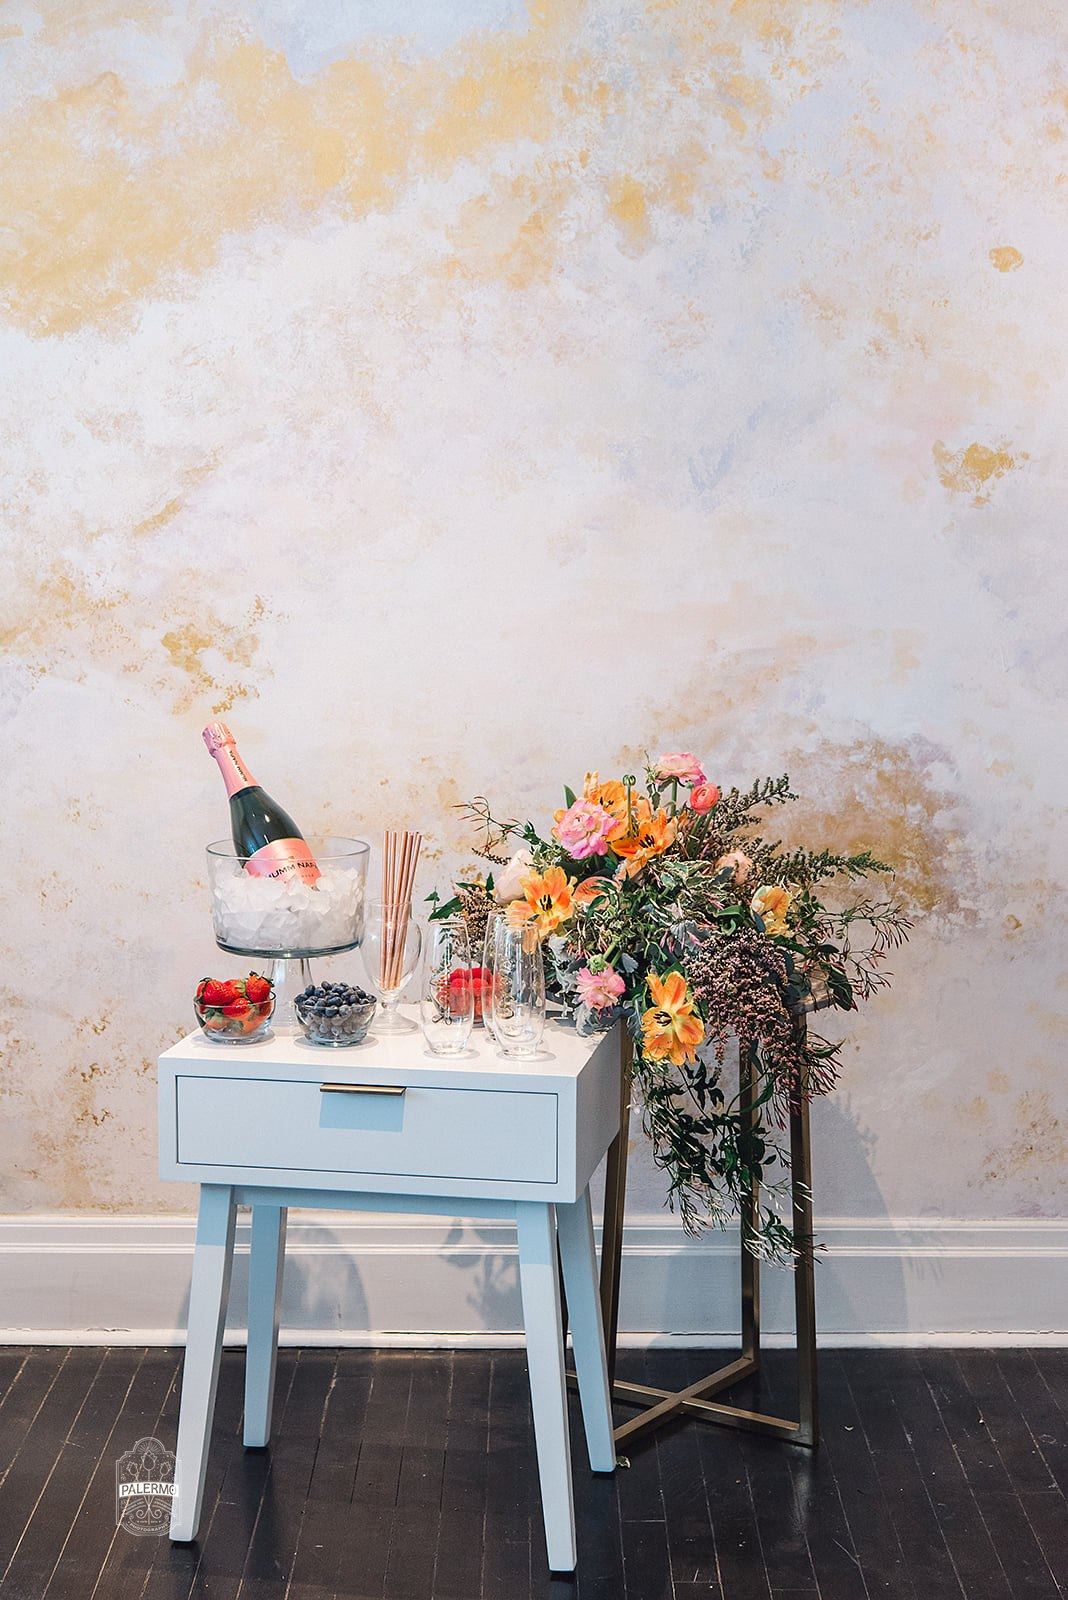 Blowouts, Bubbly & Brunch Spa Day Bridal Shower Inspiration at Glow Blotique  (42).jpg